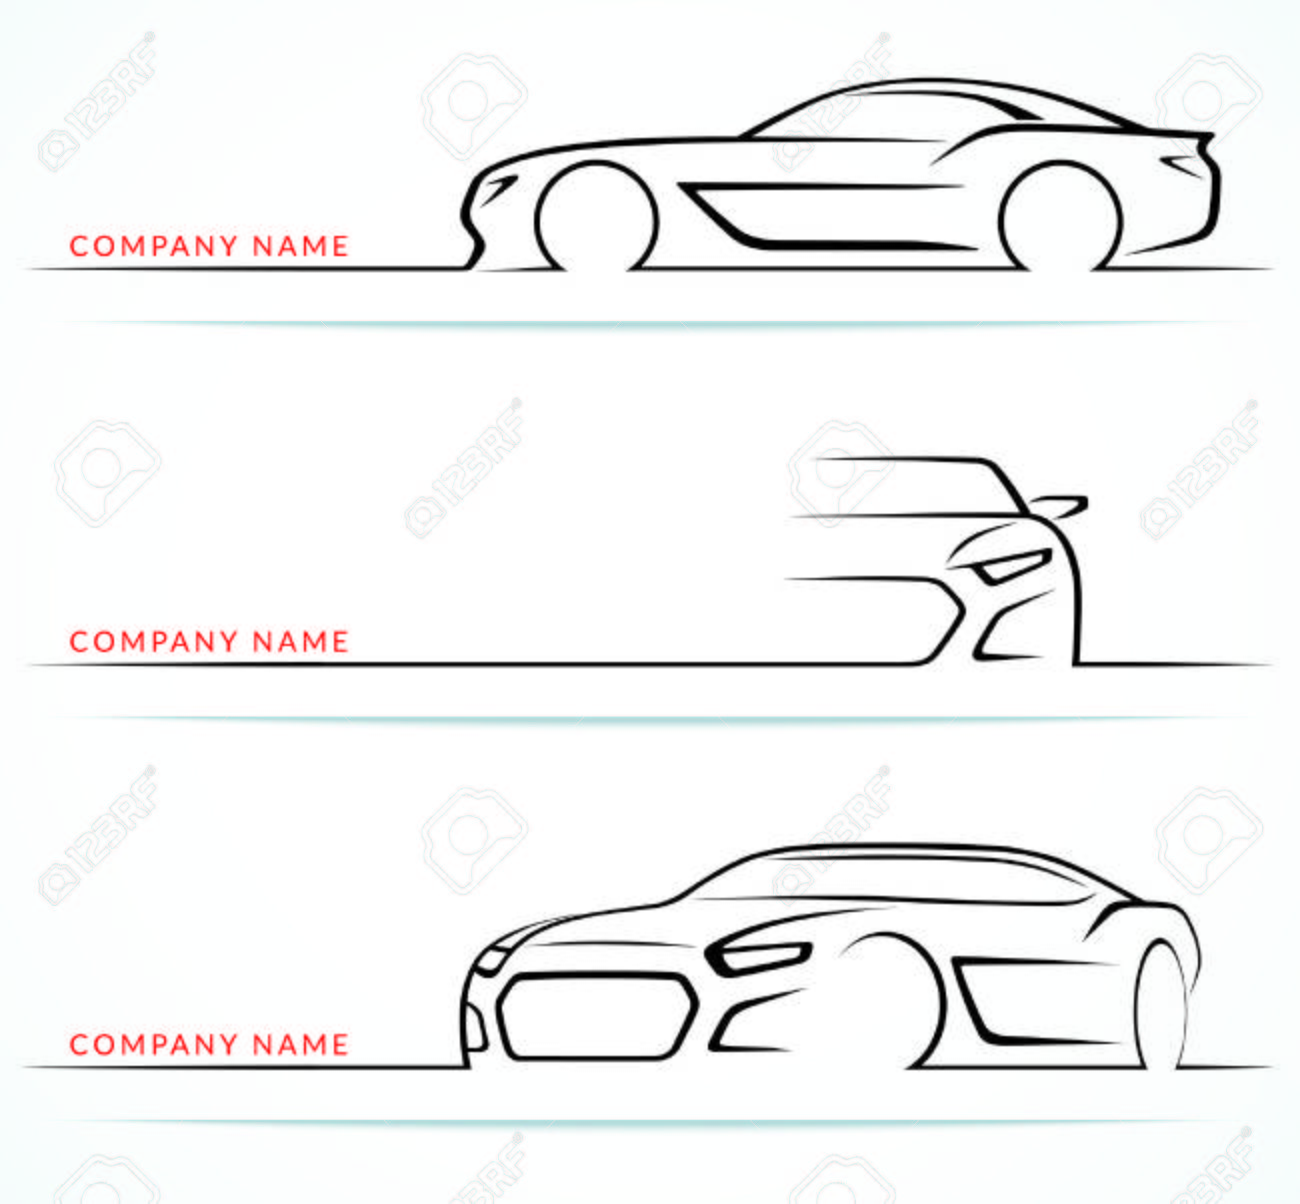 Set of sports car silhouettes isolated on white background. Front, rear, side views. Vector illustration - 56719758